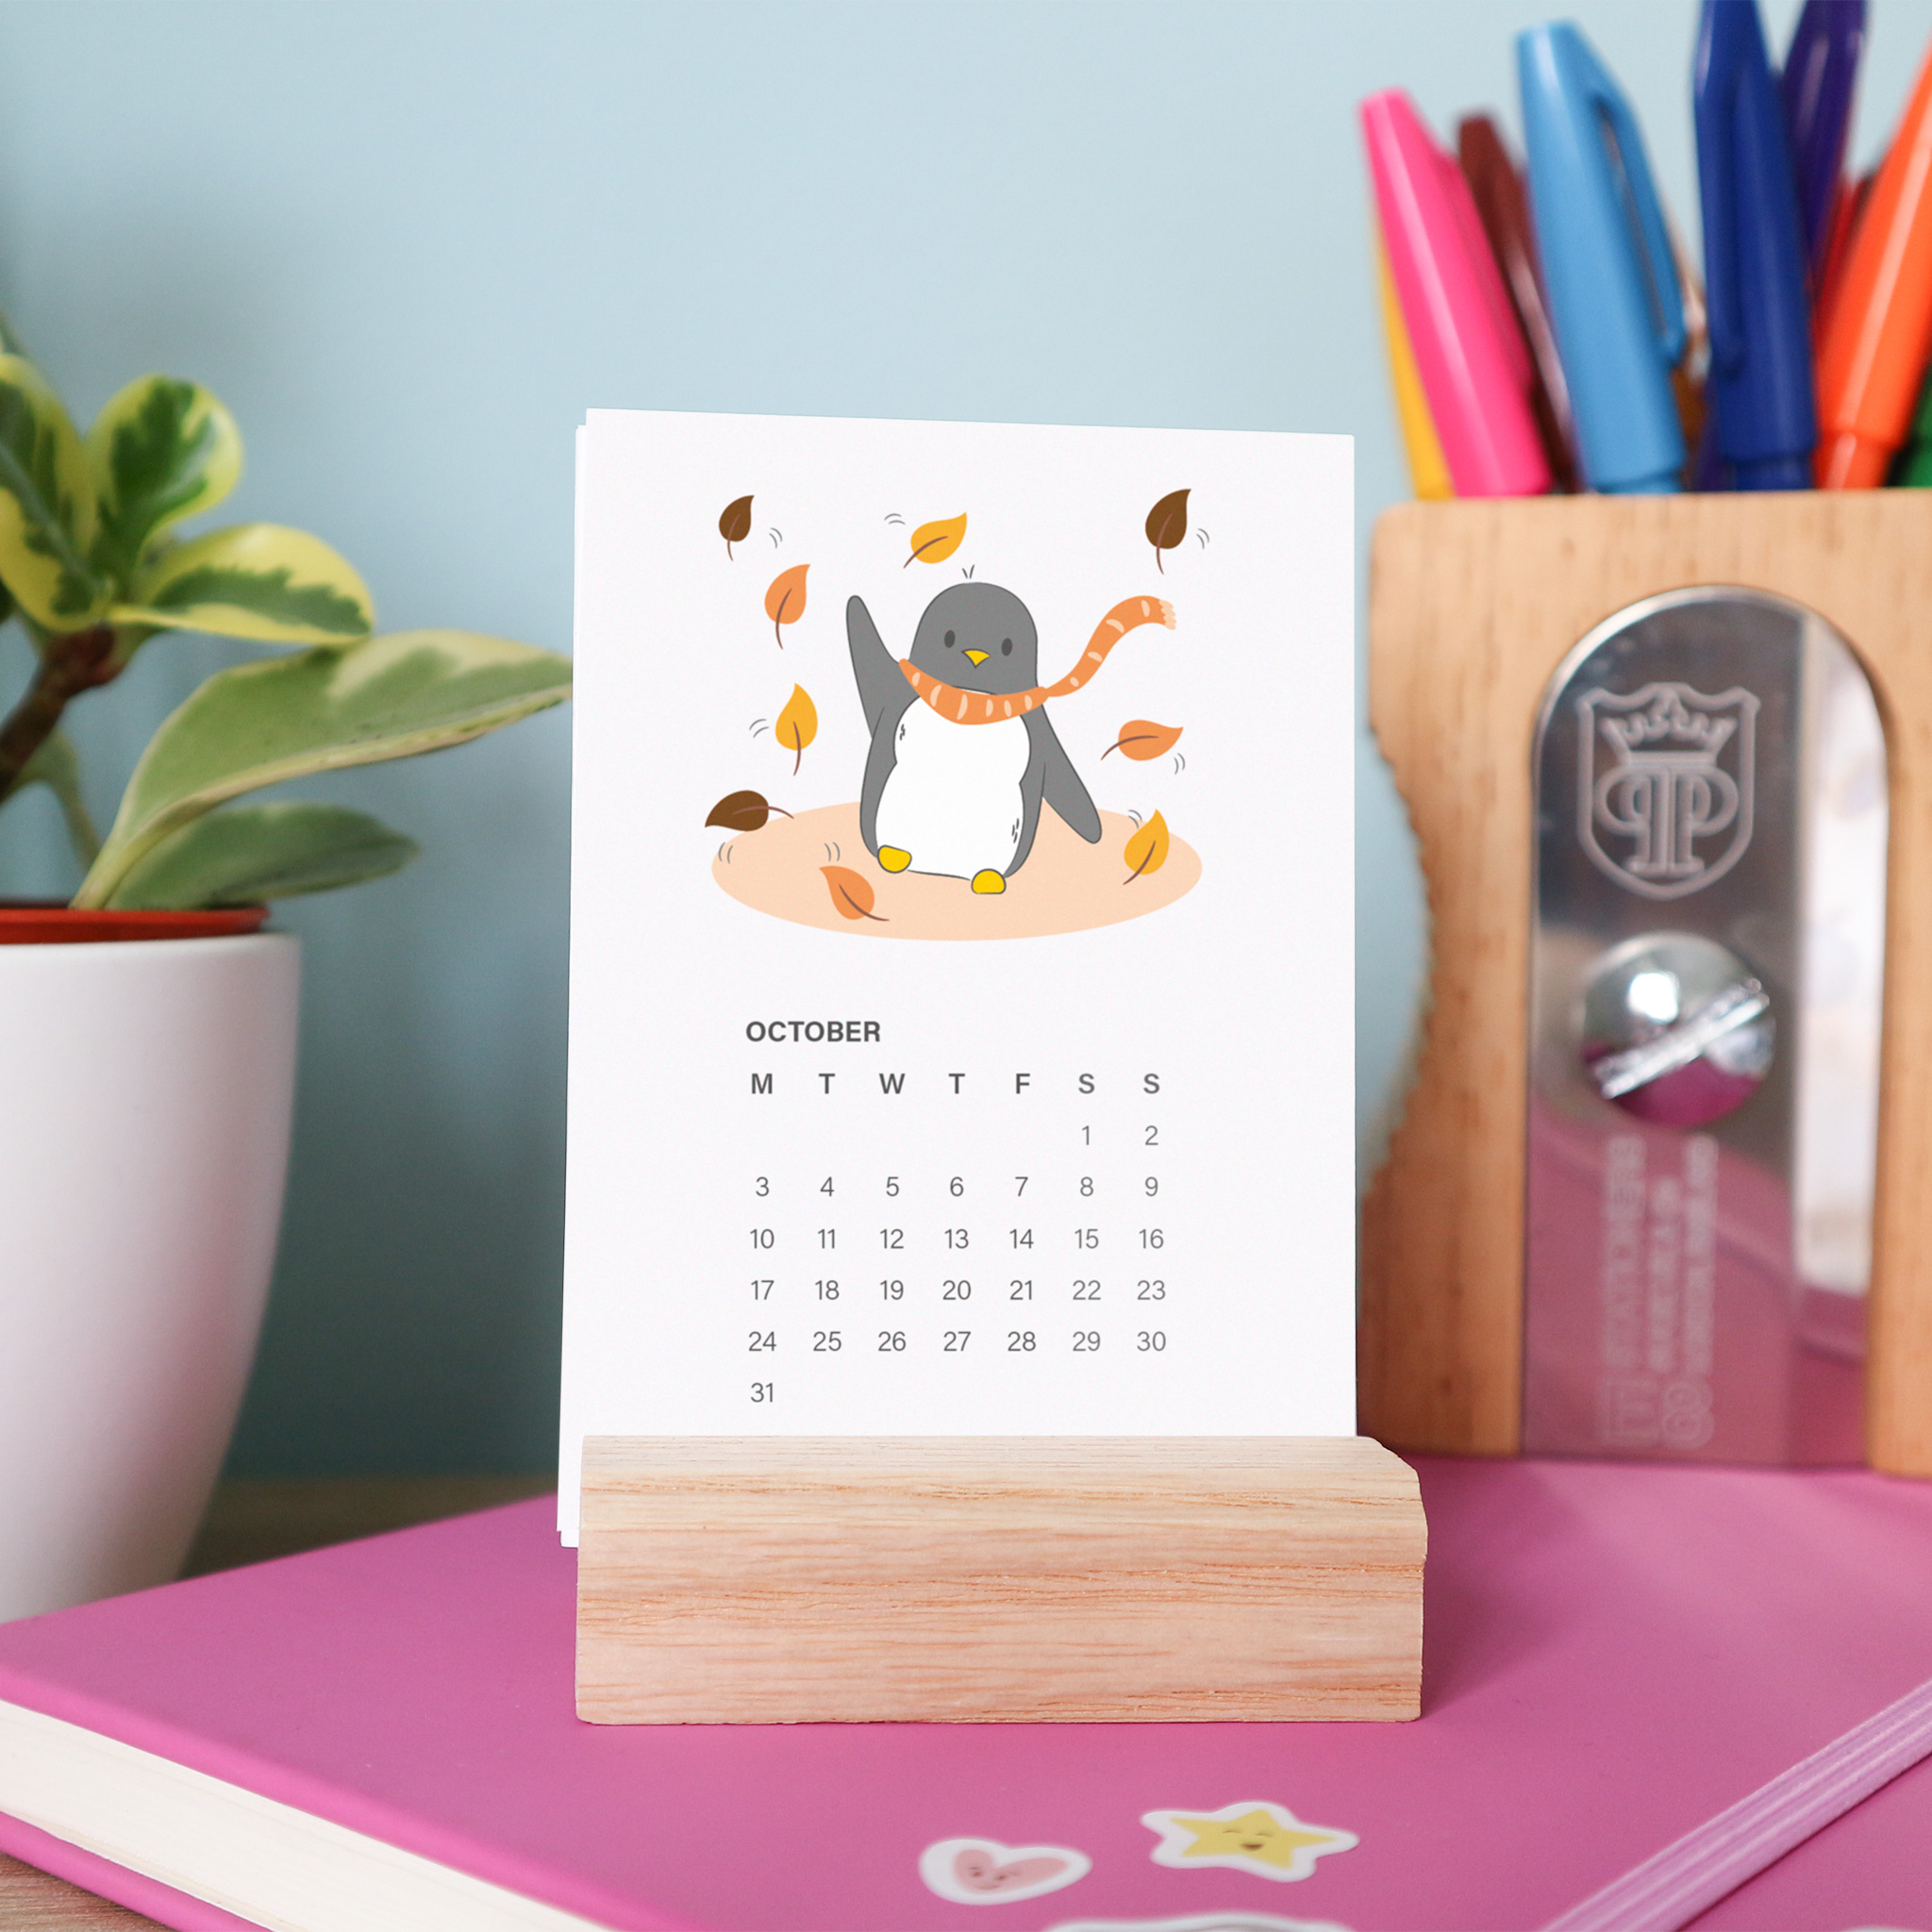 A photo of the October page of the 2022 Penguin Calendar. The page shows Penguin dancing in the orange leaves of autumn wearing an orange scarf. The calendar is sitting on a wooden stand. In the background is a colourful pencil pot and a plant.